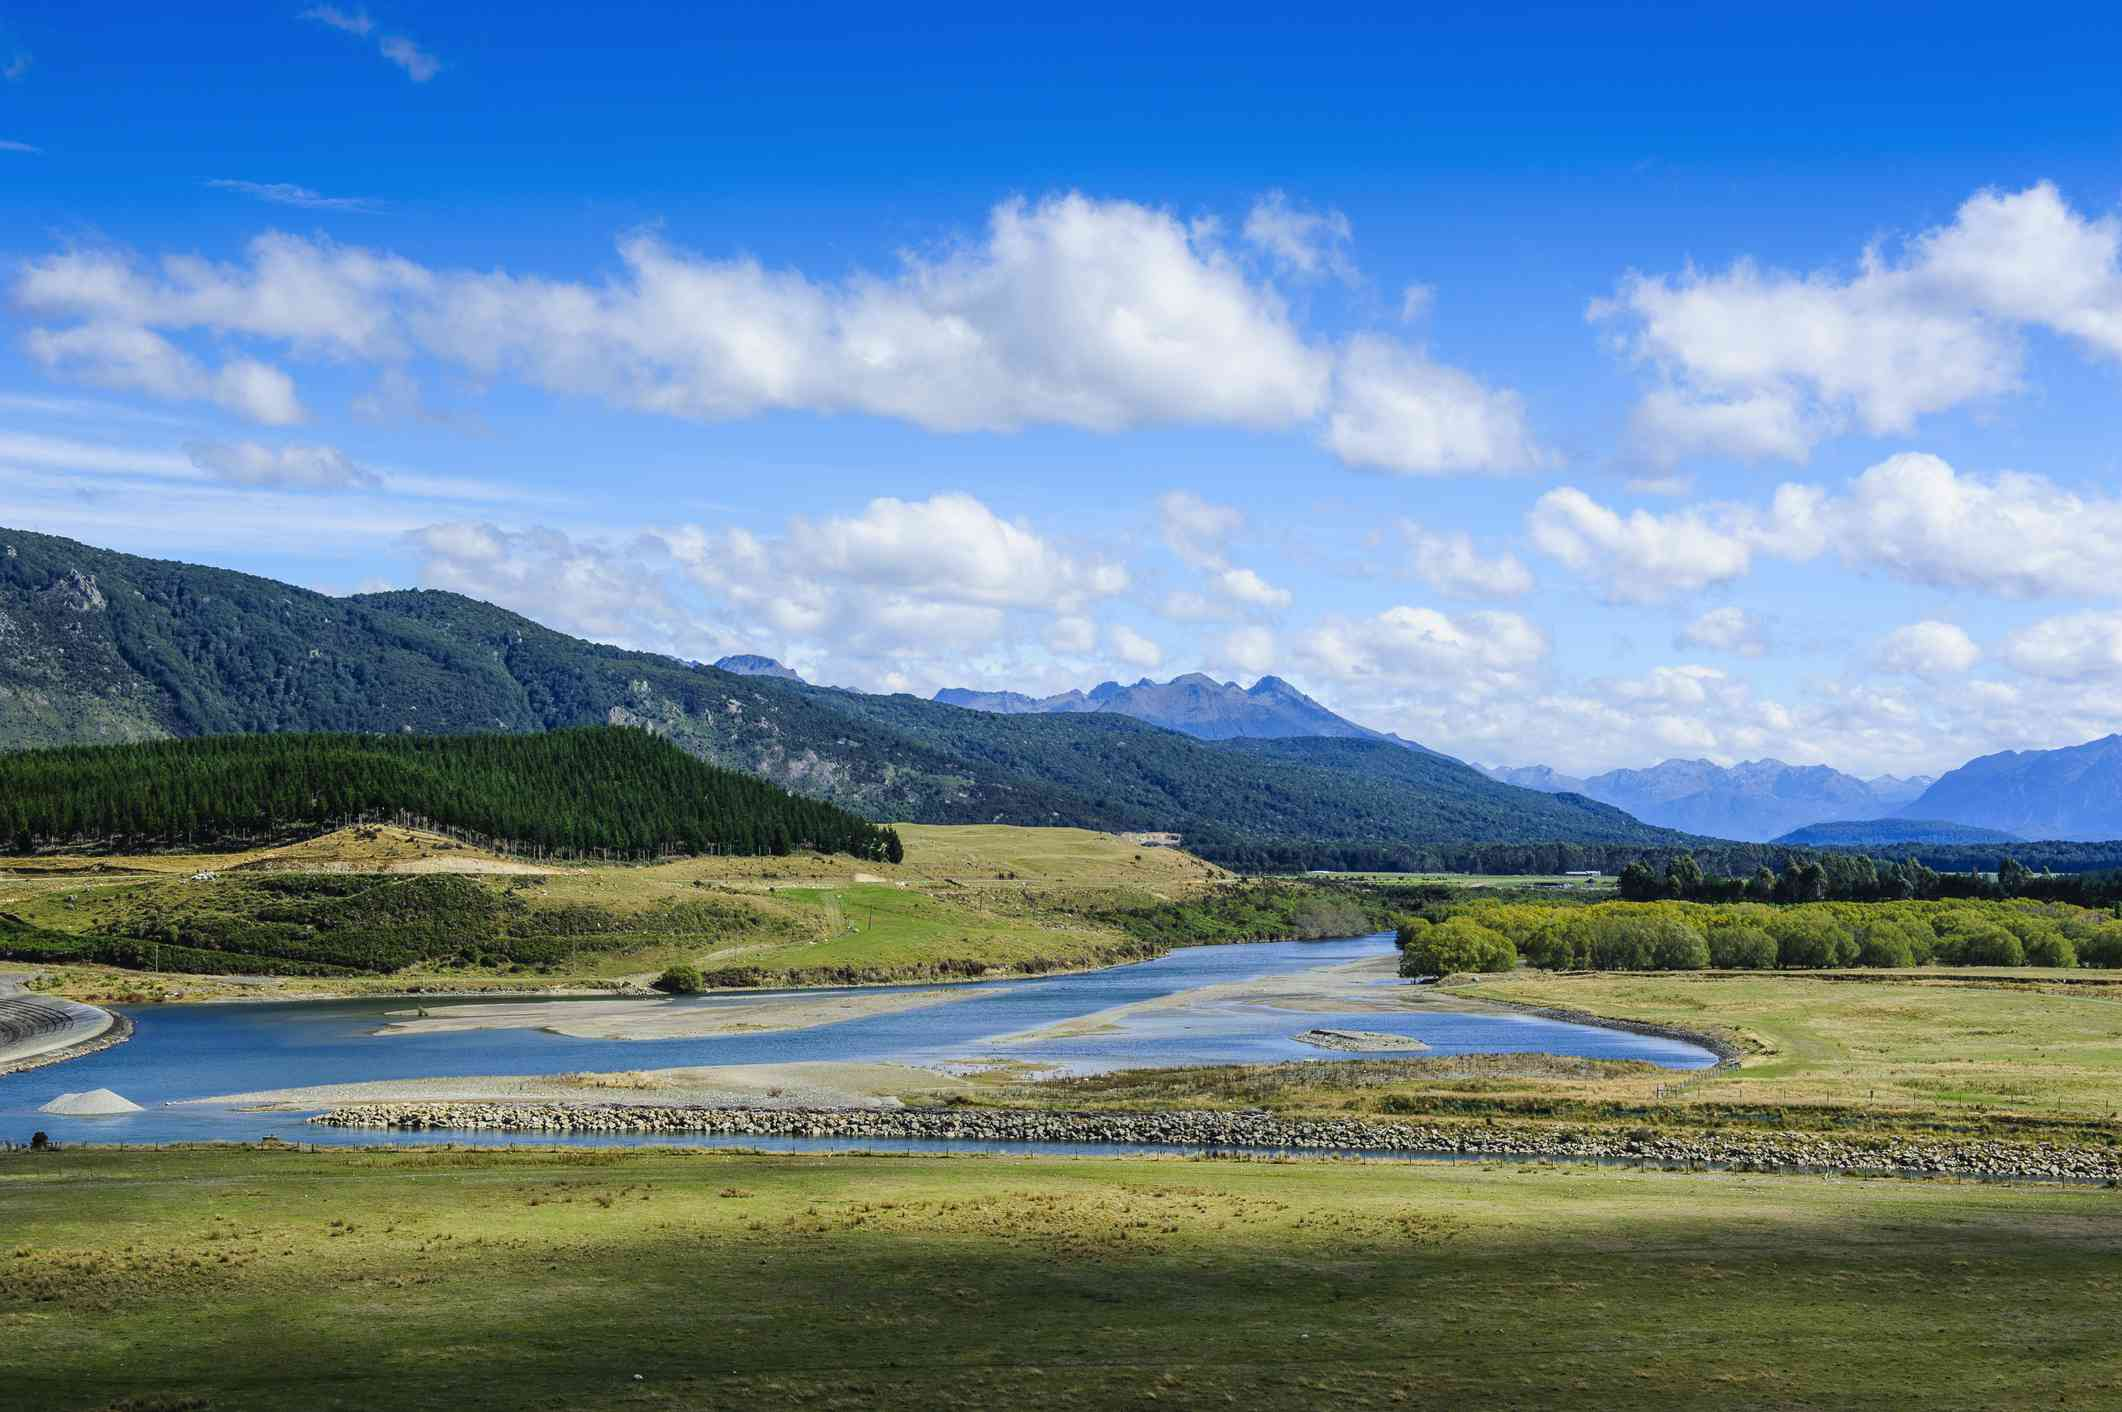 grassy plains and mountains